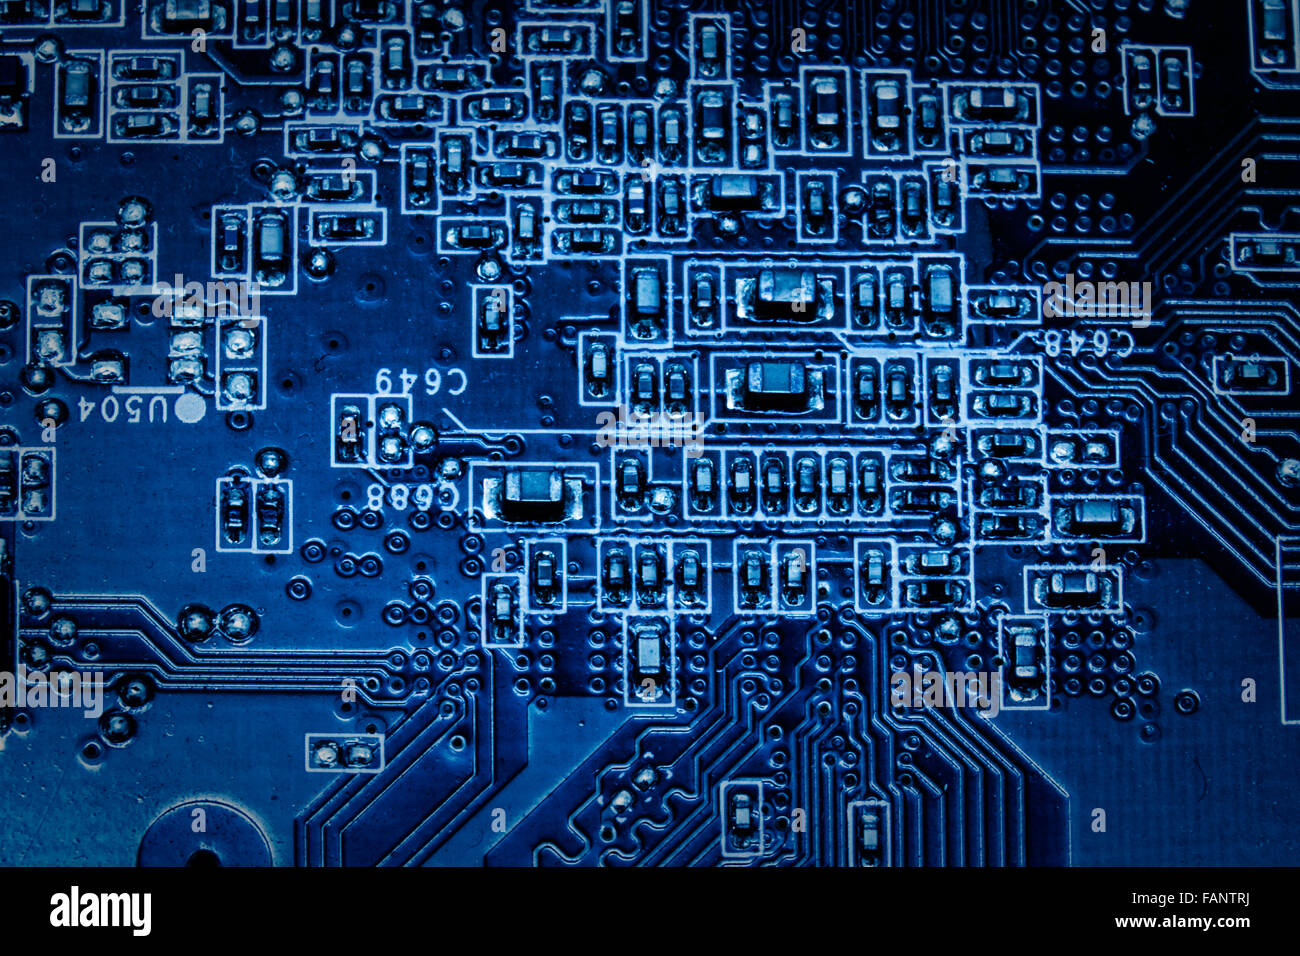 Hardware Abstraction Stock Photos & Hardware Abstraction